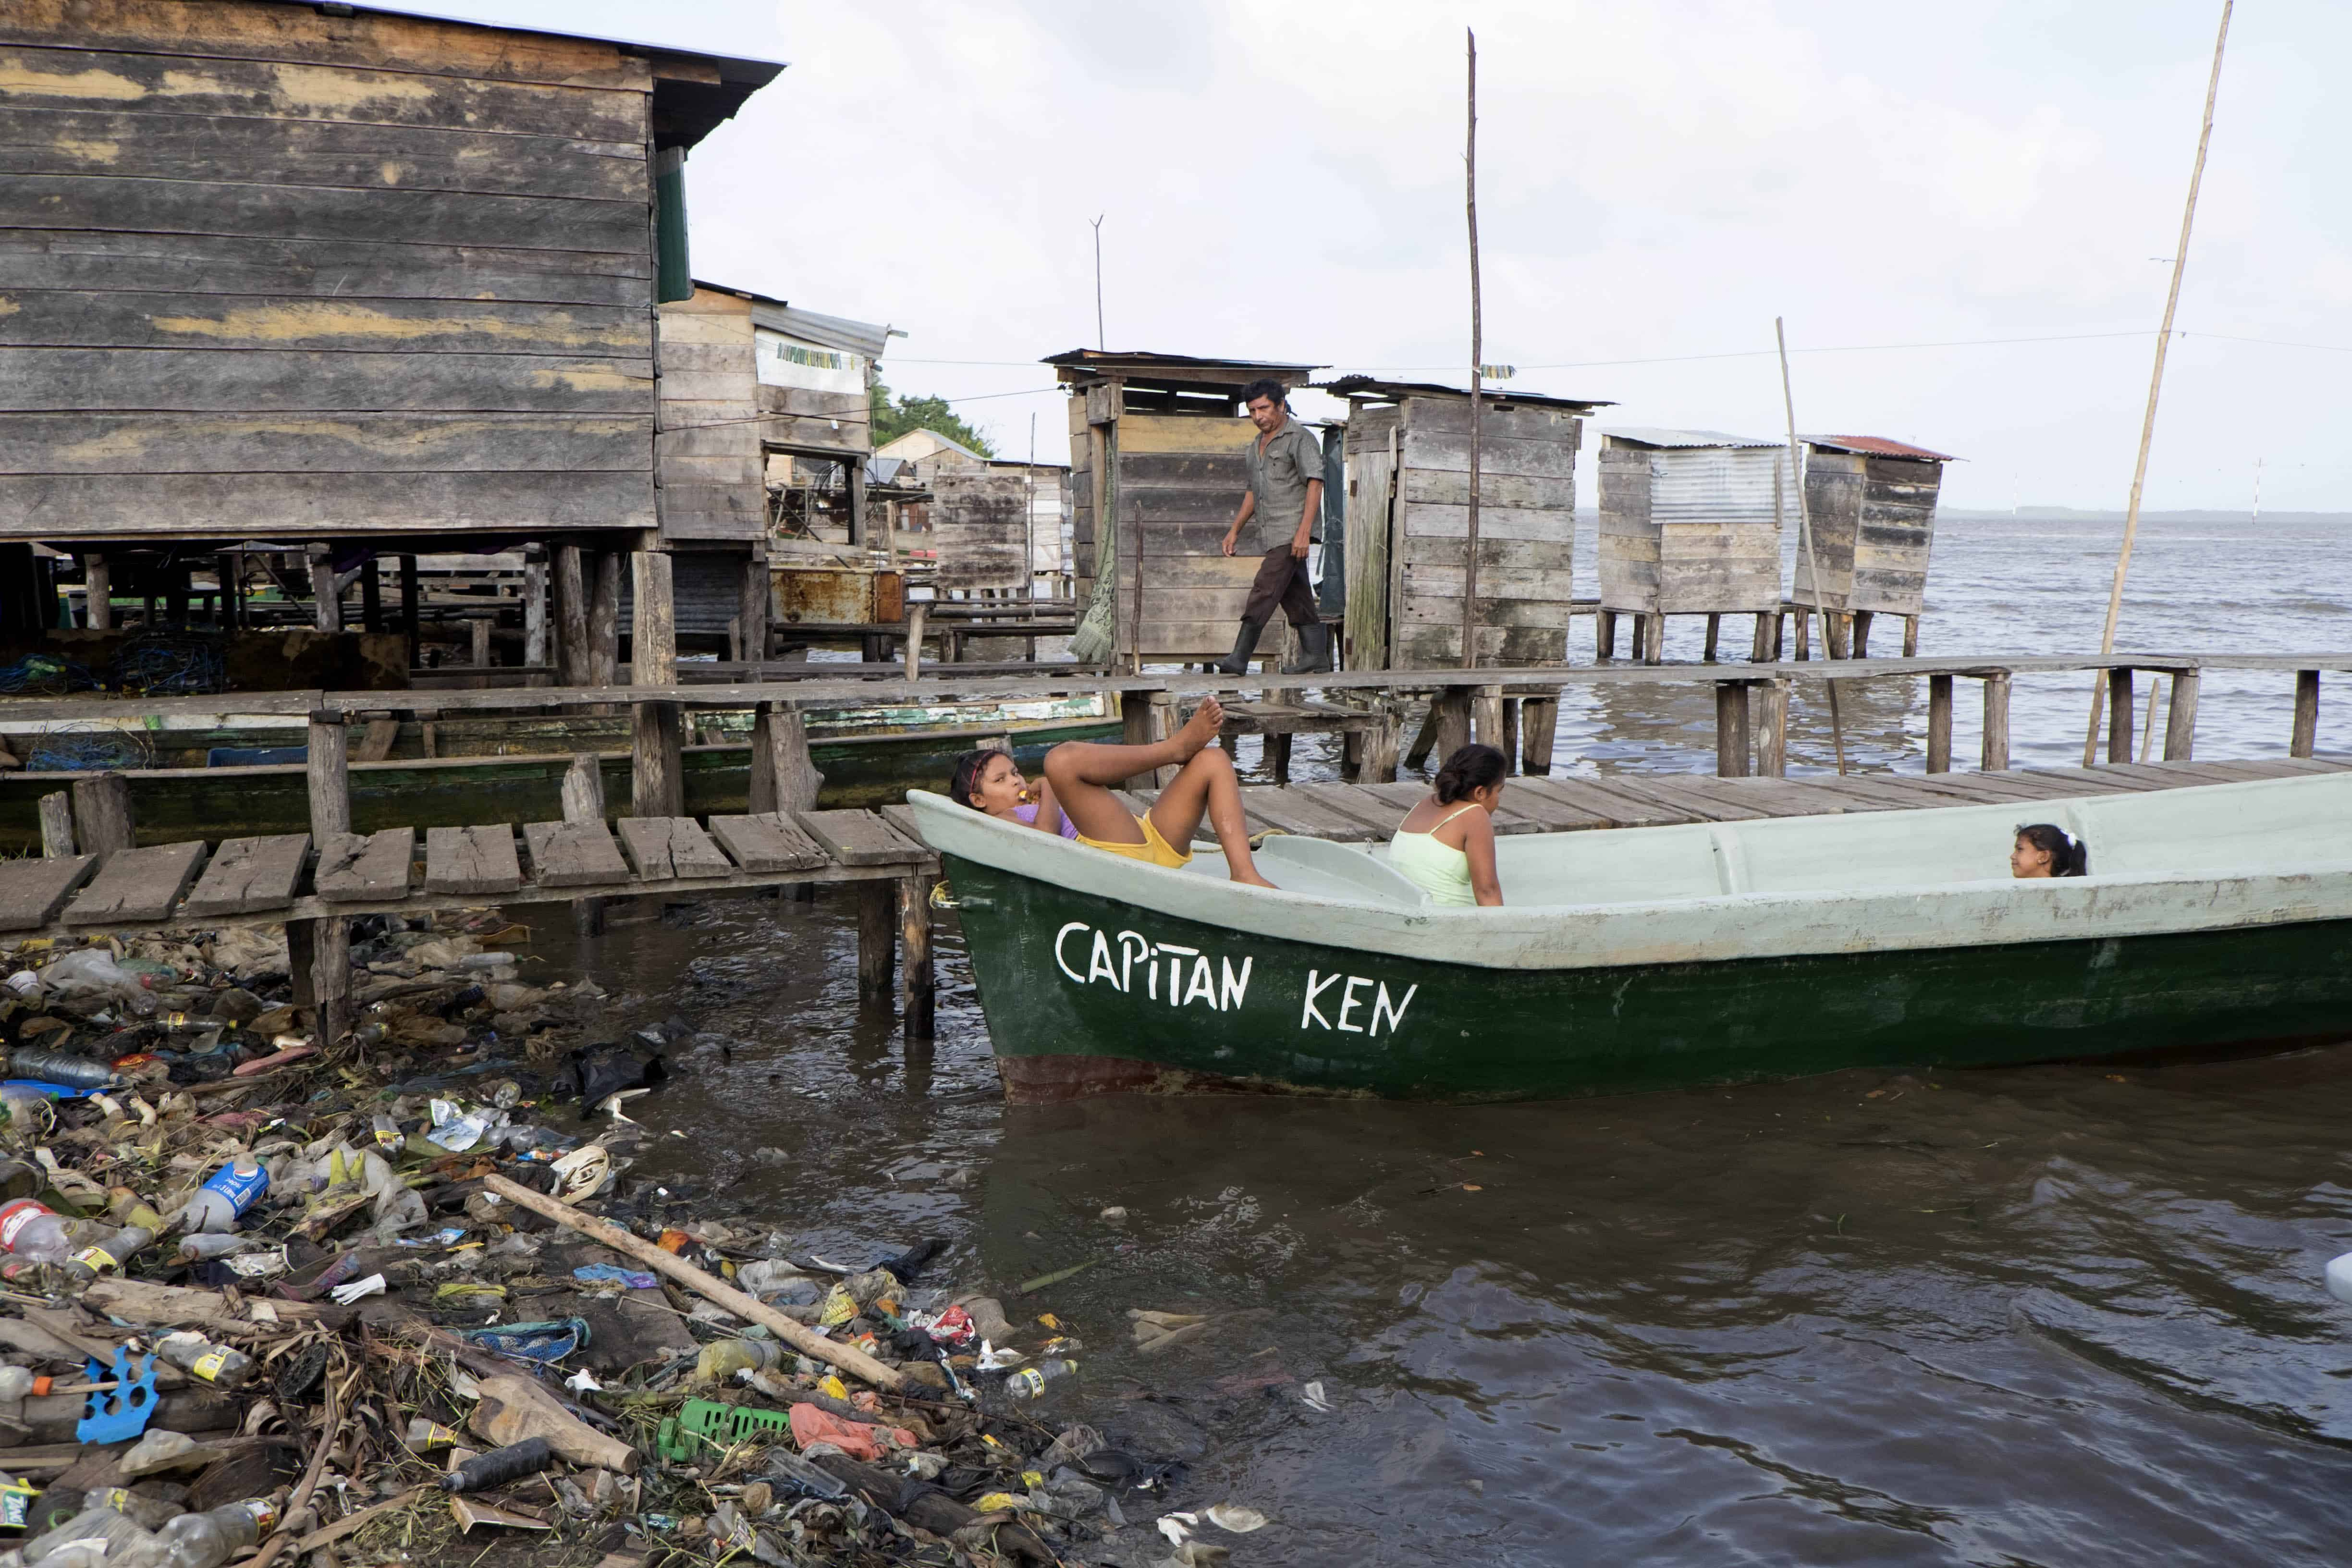 The once-thriving harbor in Bluefields, Nicaragua, is now full of slums.